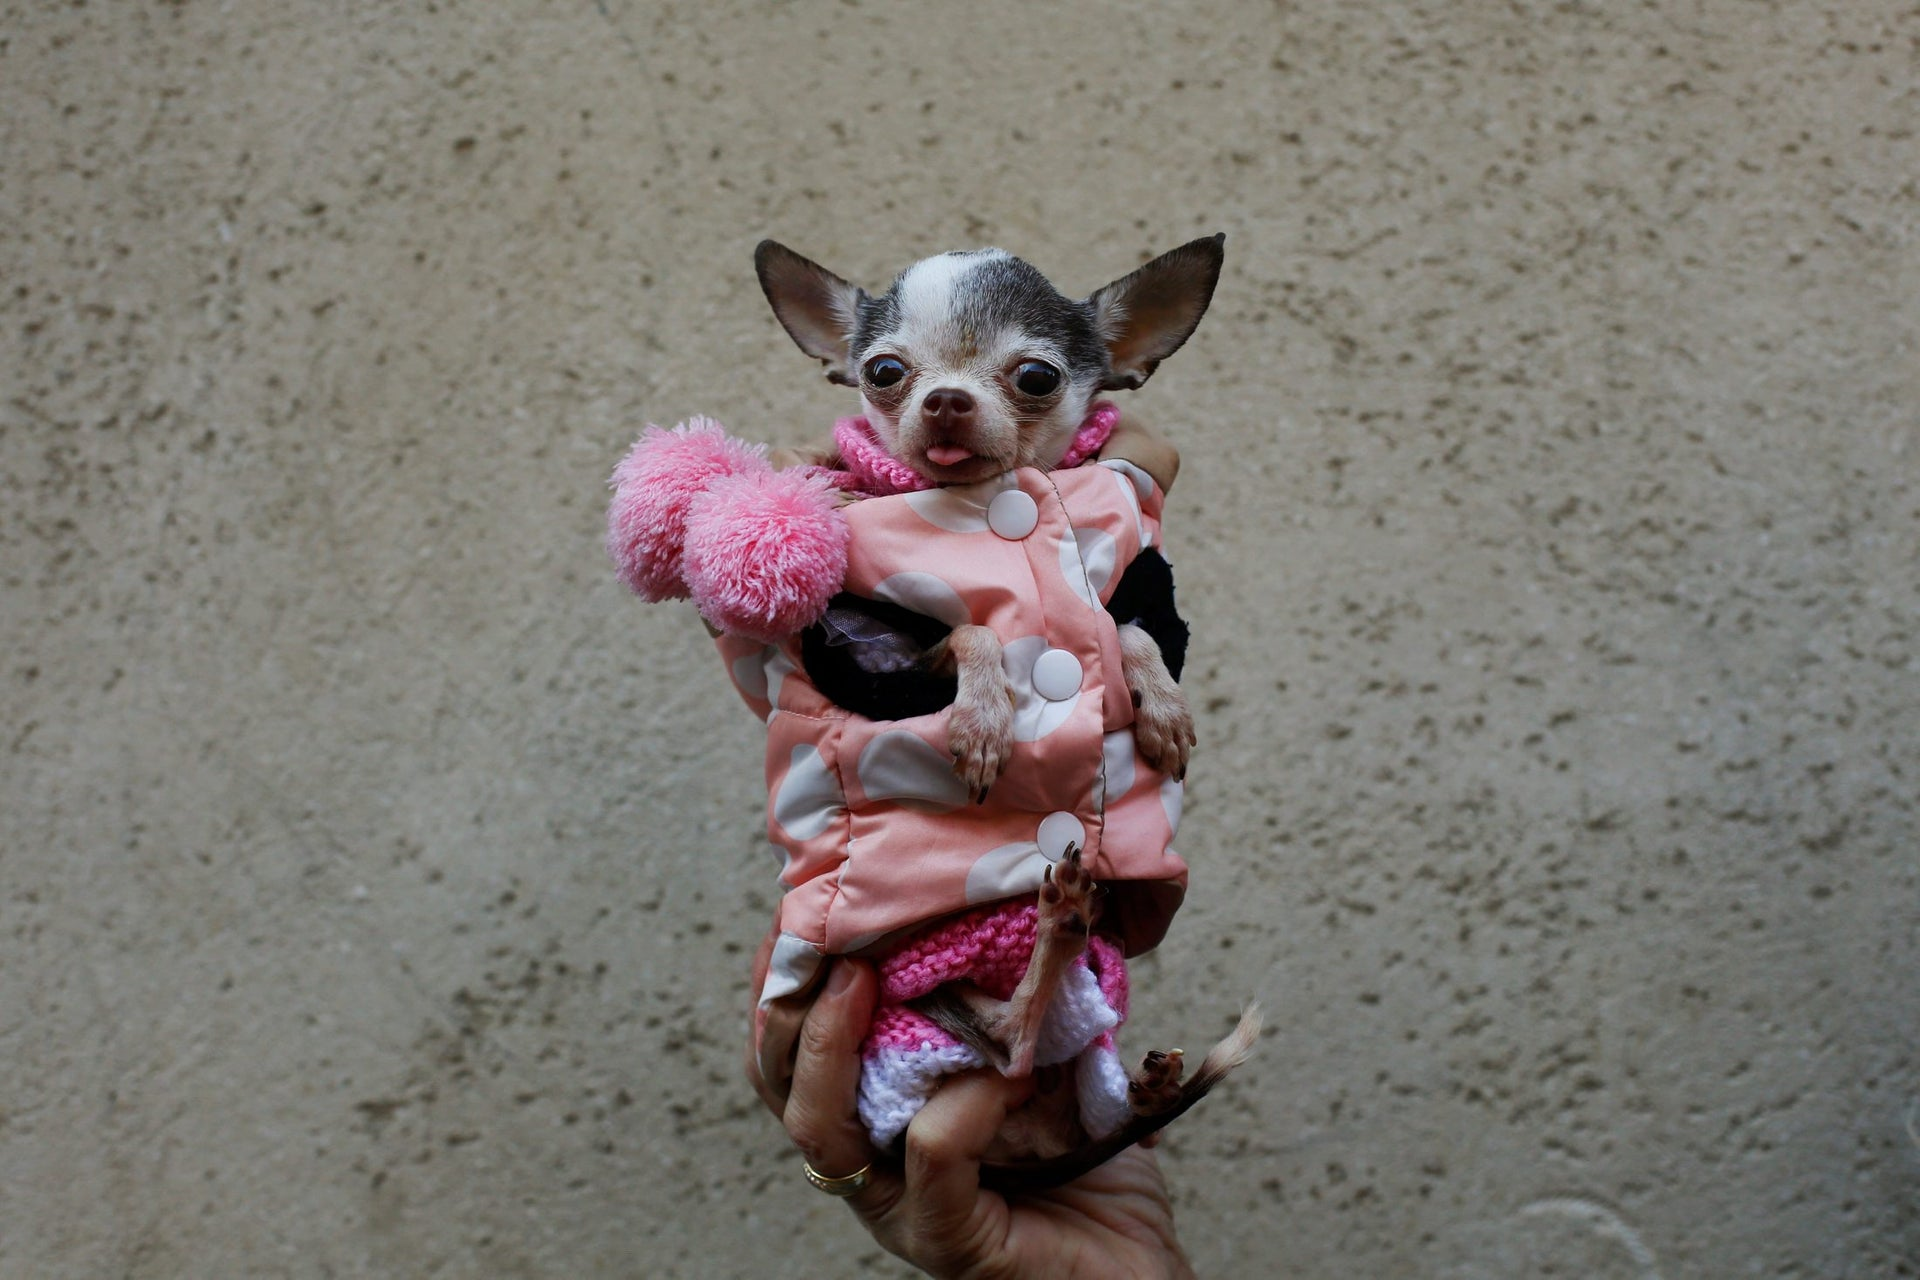 People tend to upload pictures like these: Photo shows swaddled chihuahua